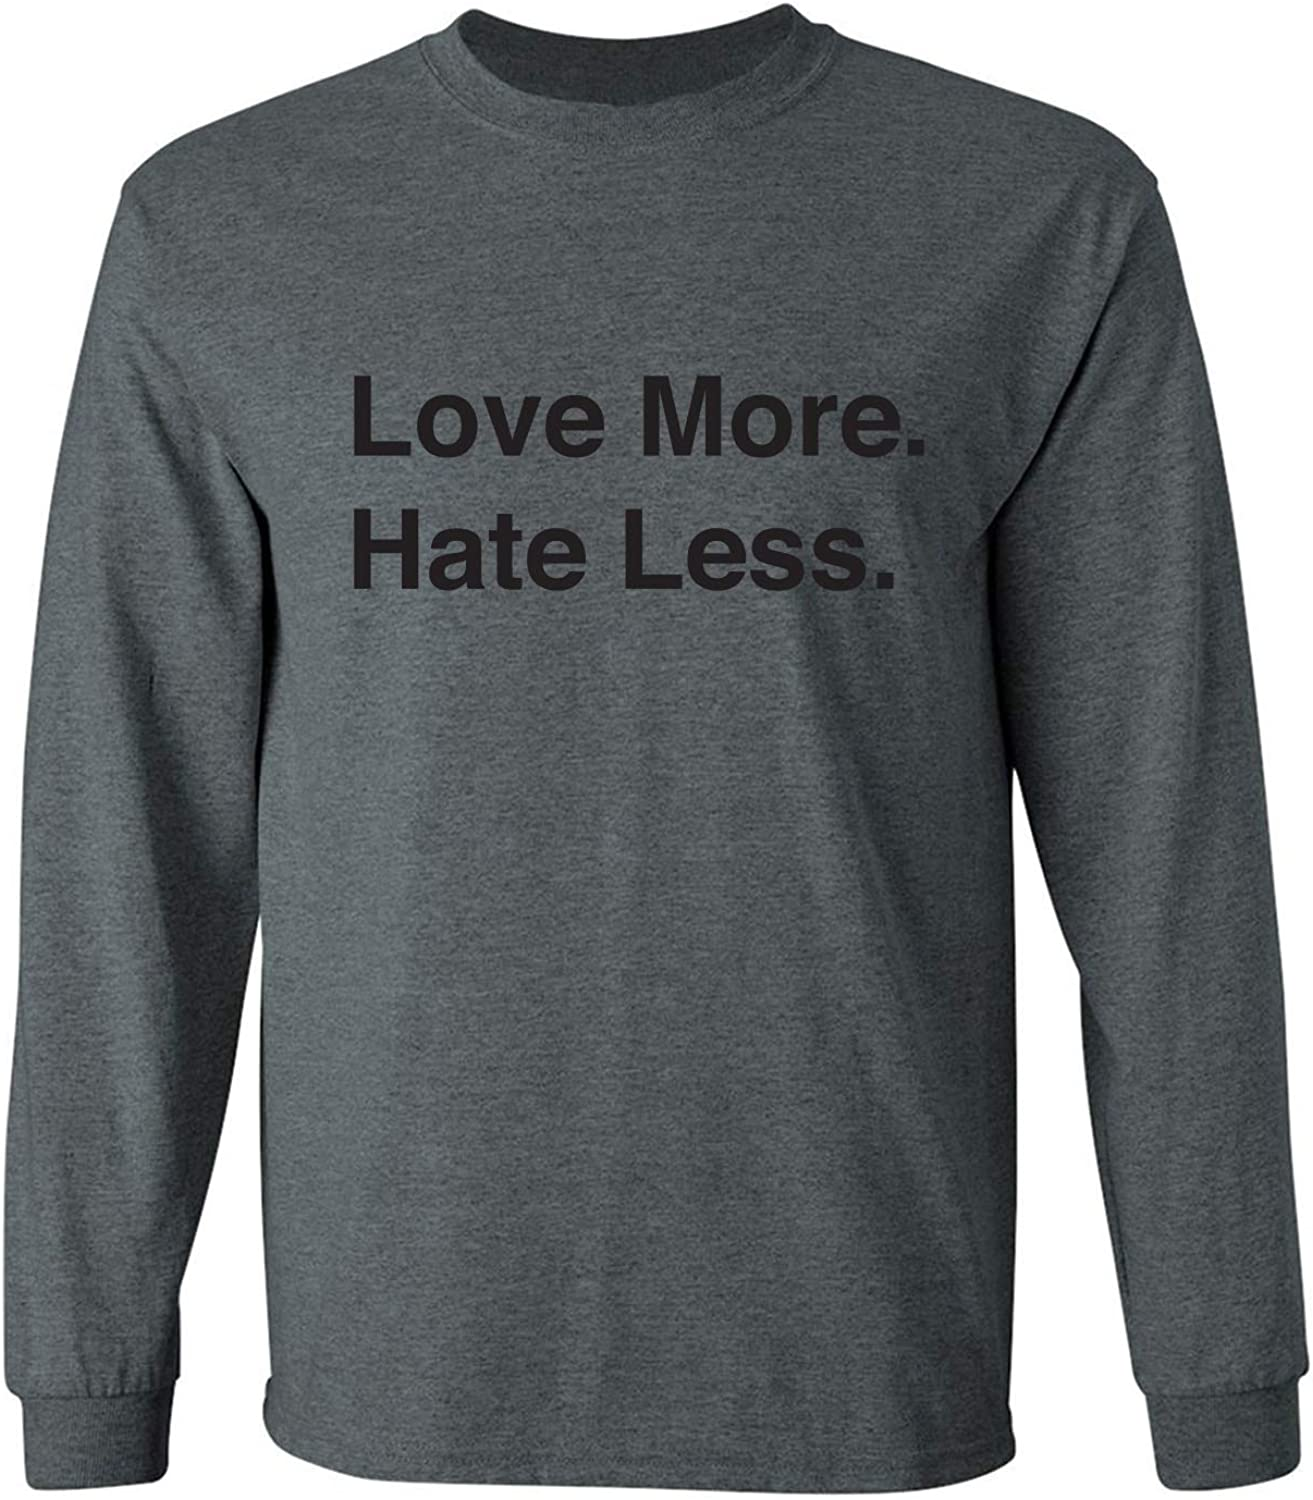 Love More. Hate Less. Adult Long Sleeve T-Shirt